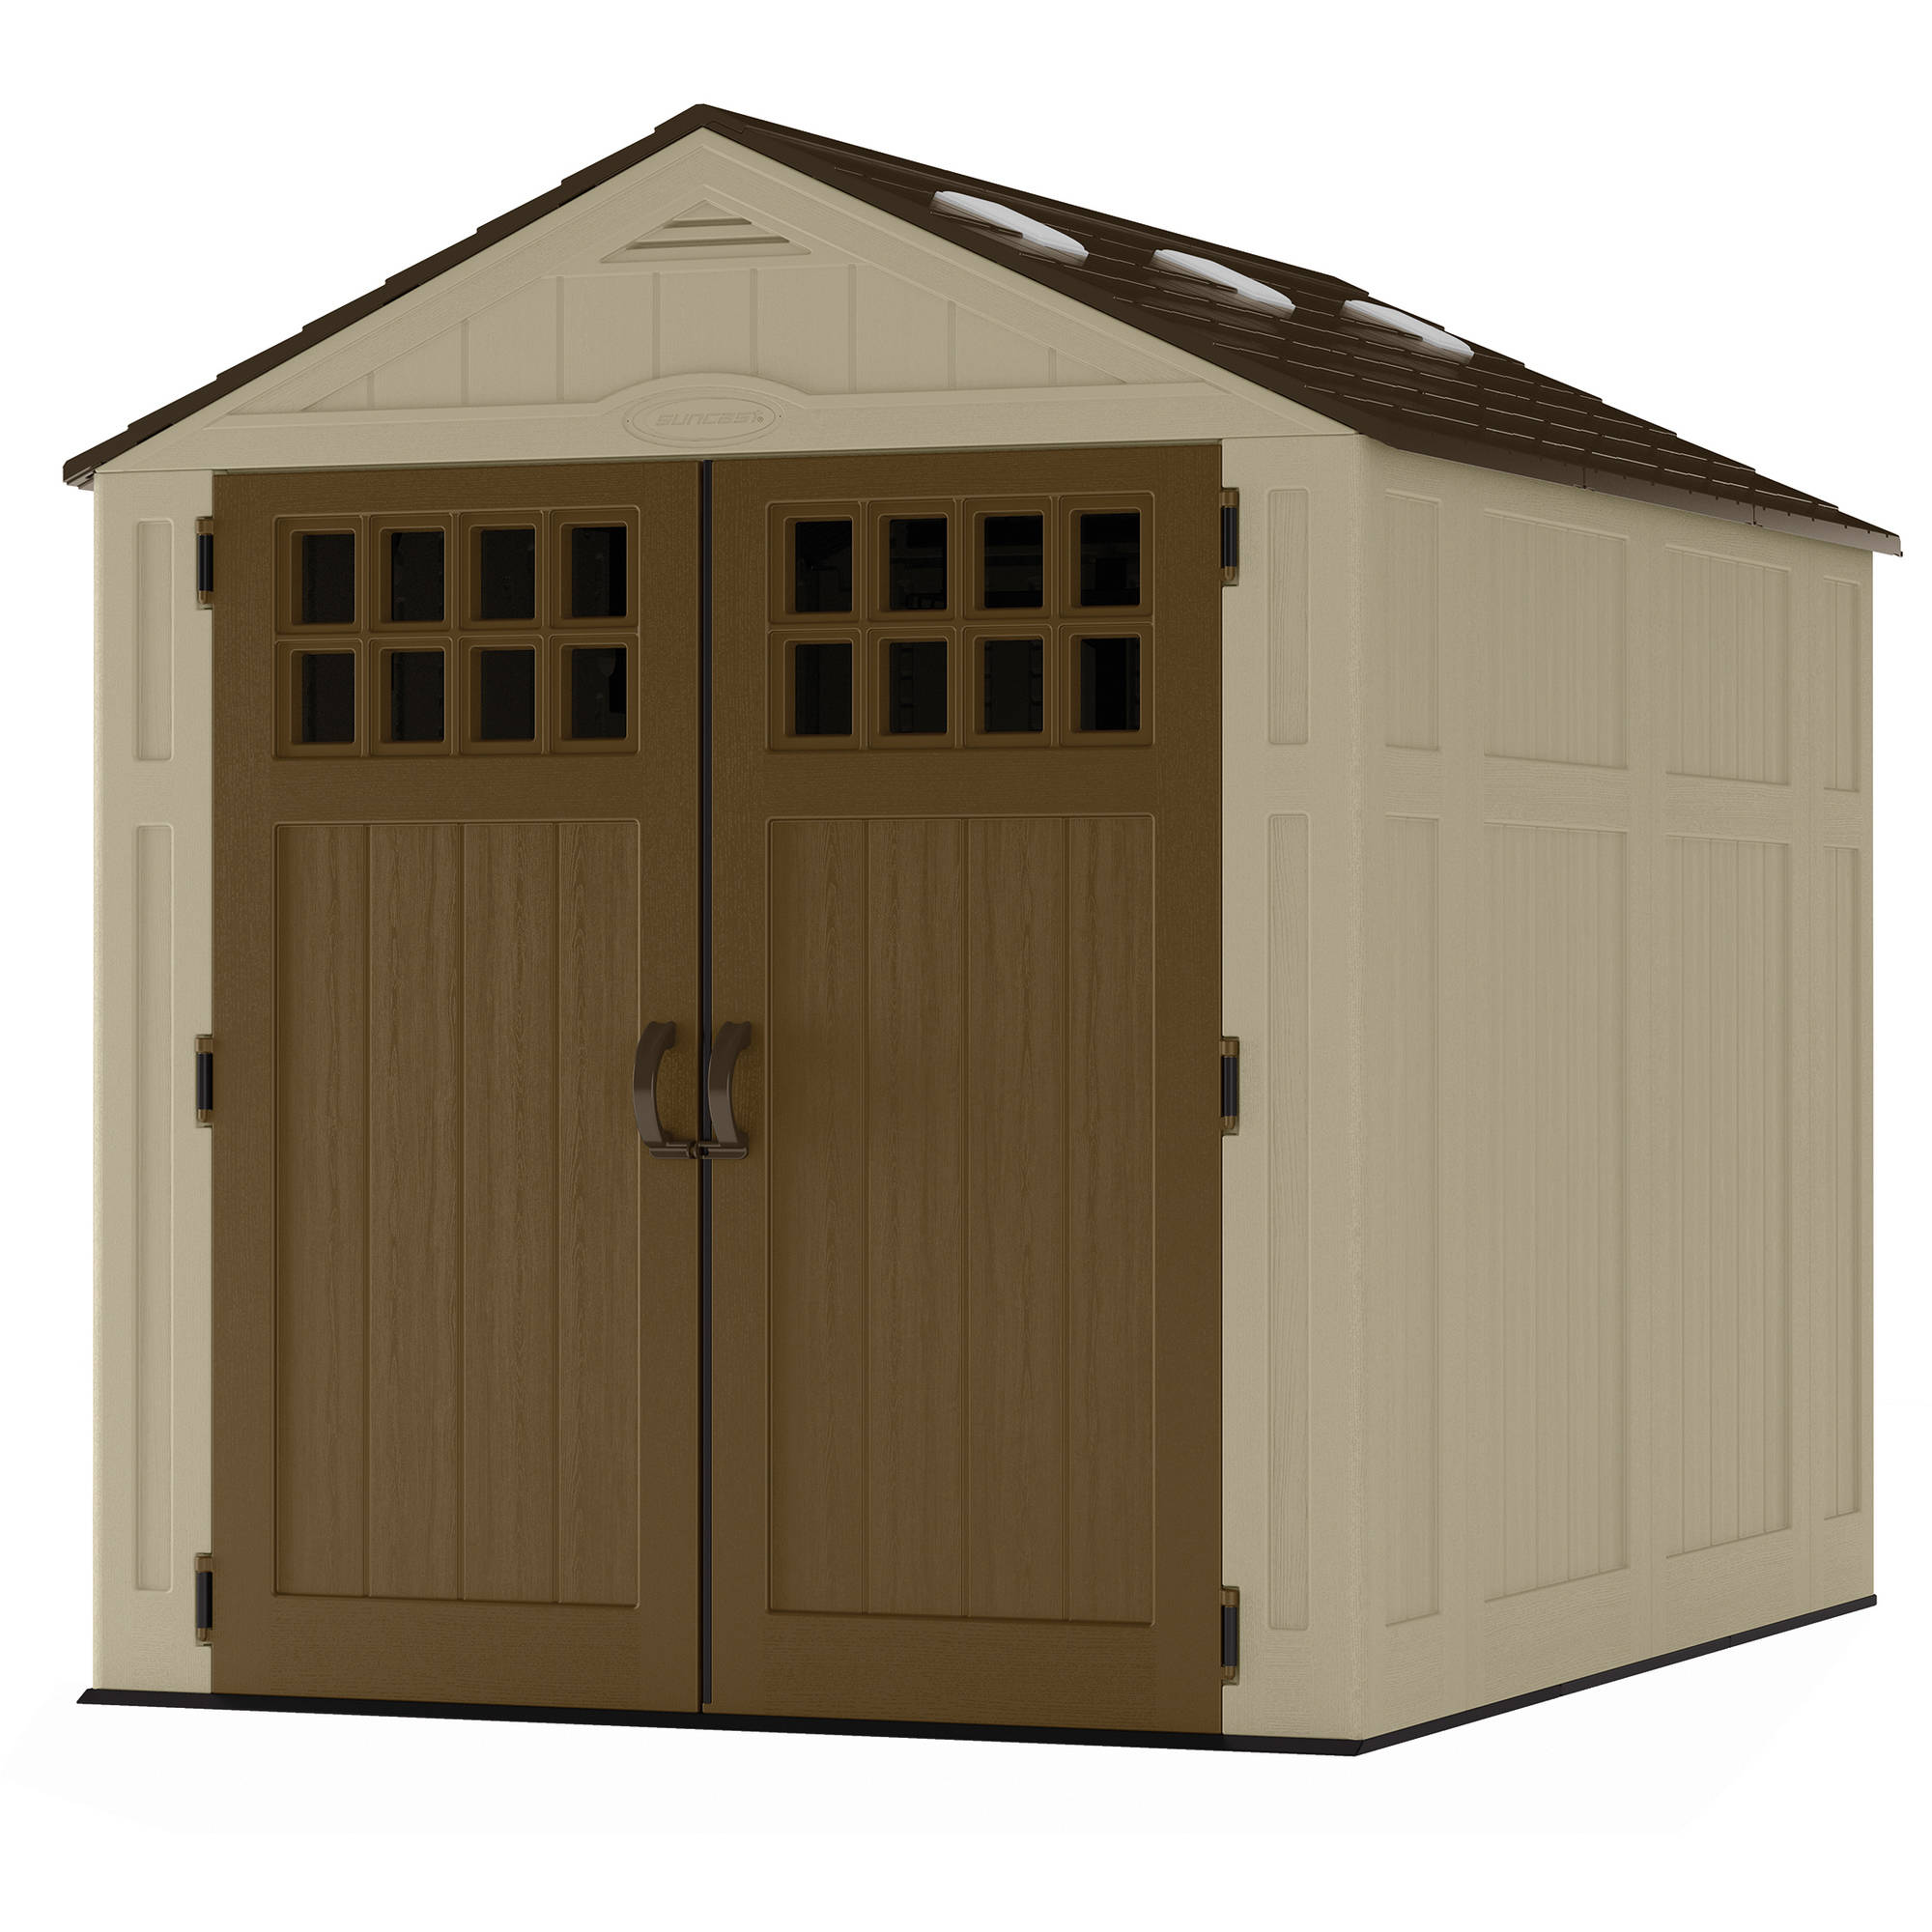 box design rubbermaid darntough sheds picture ideas storage